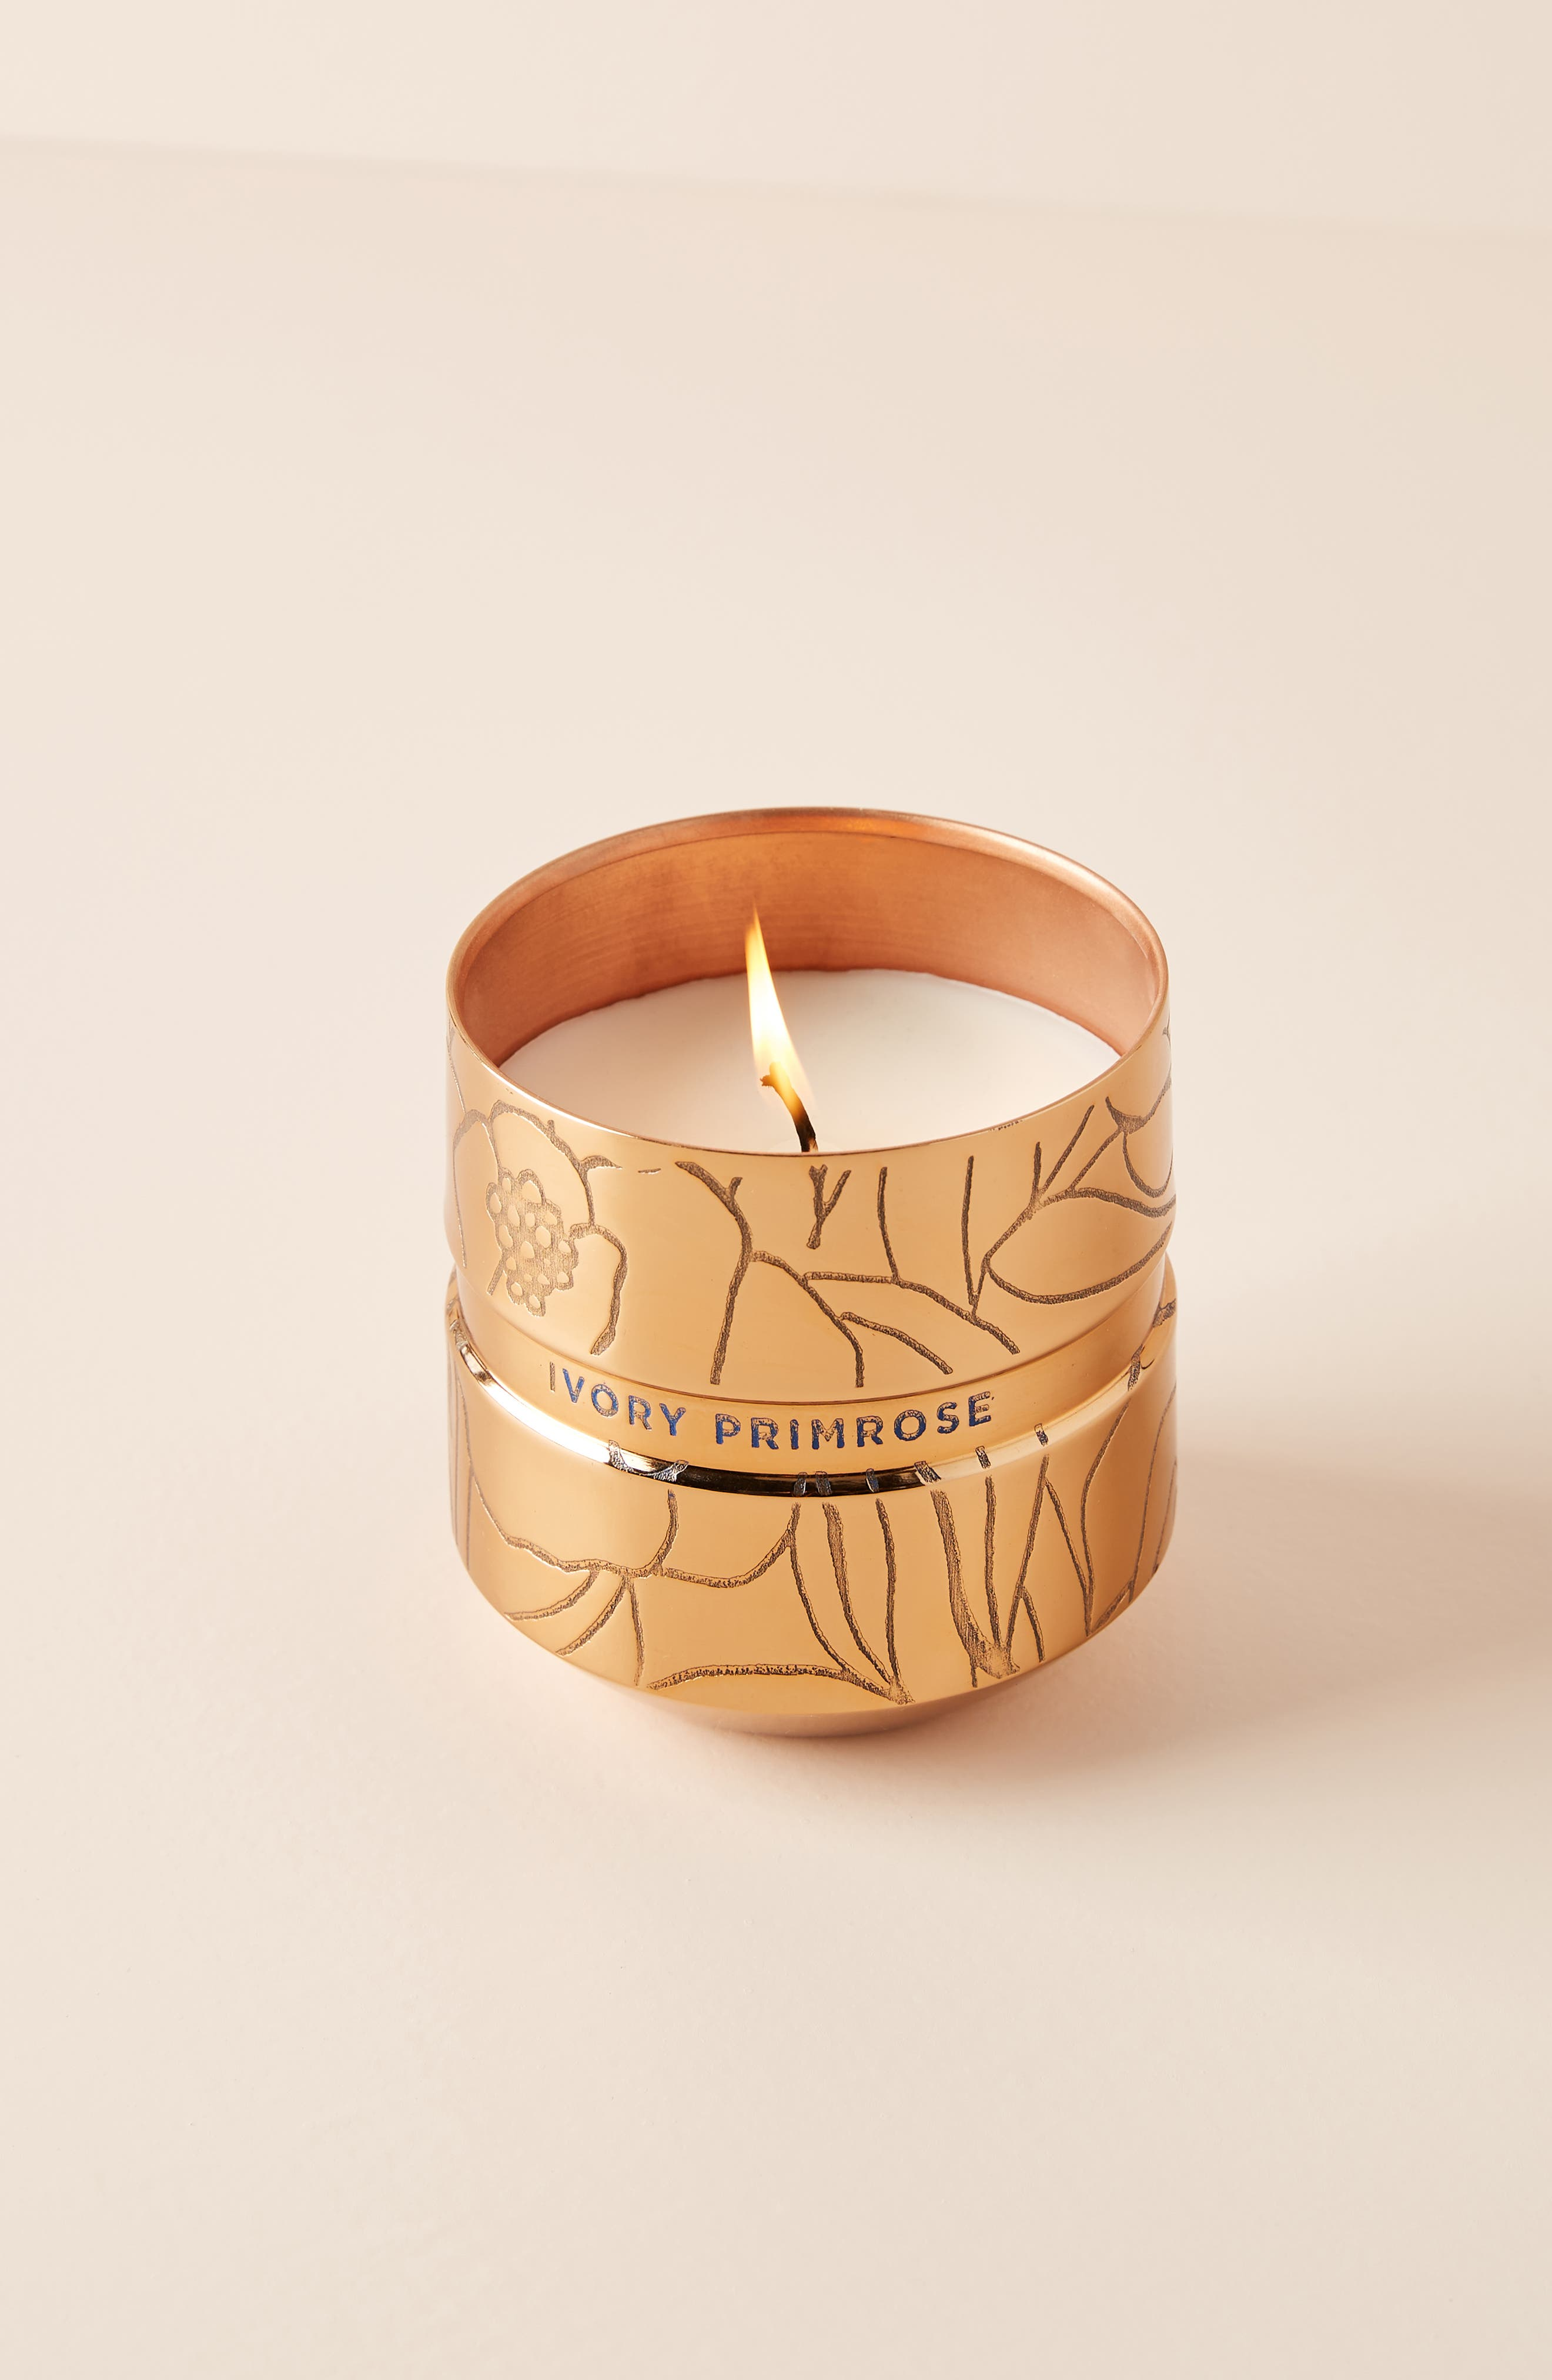 ANTHROPOLOGIE, Ivory Primrose Flora Couture Candle, Main thumbnail 1, color, IVORY PRIMROSE